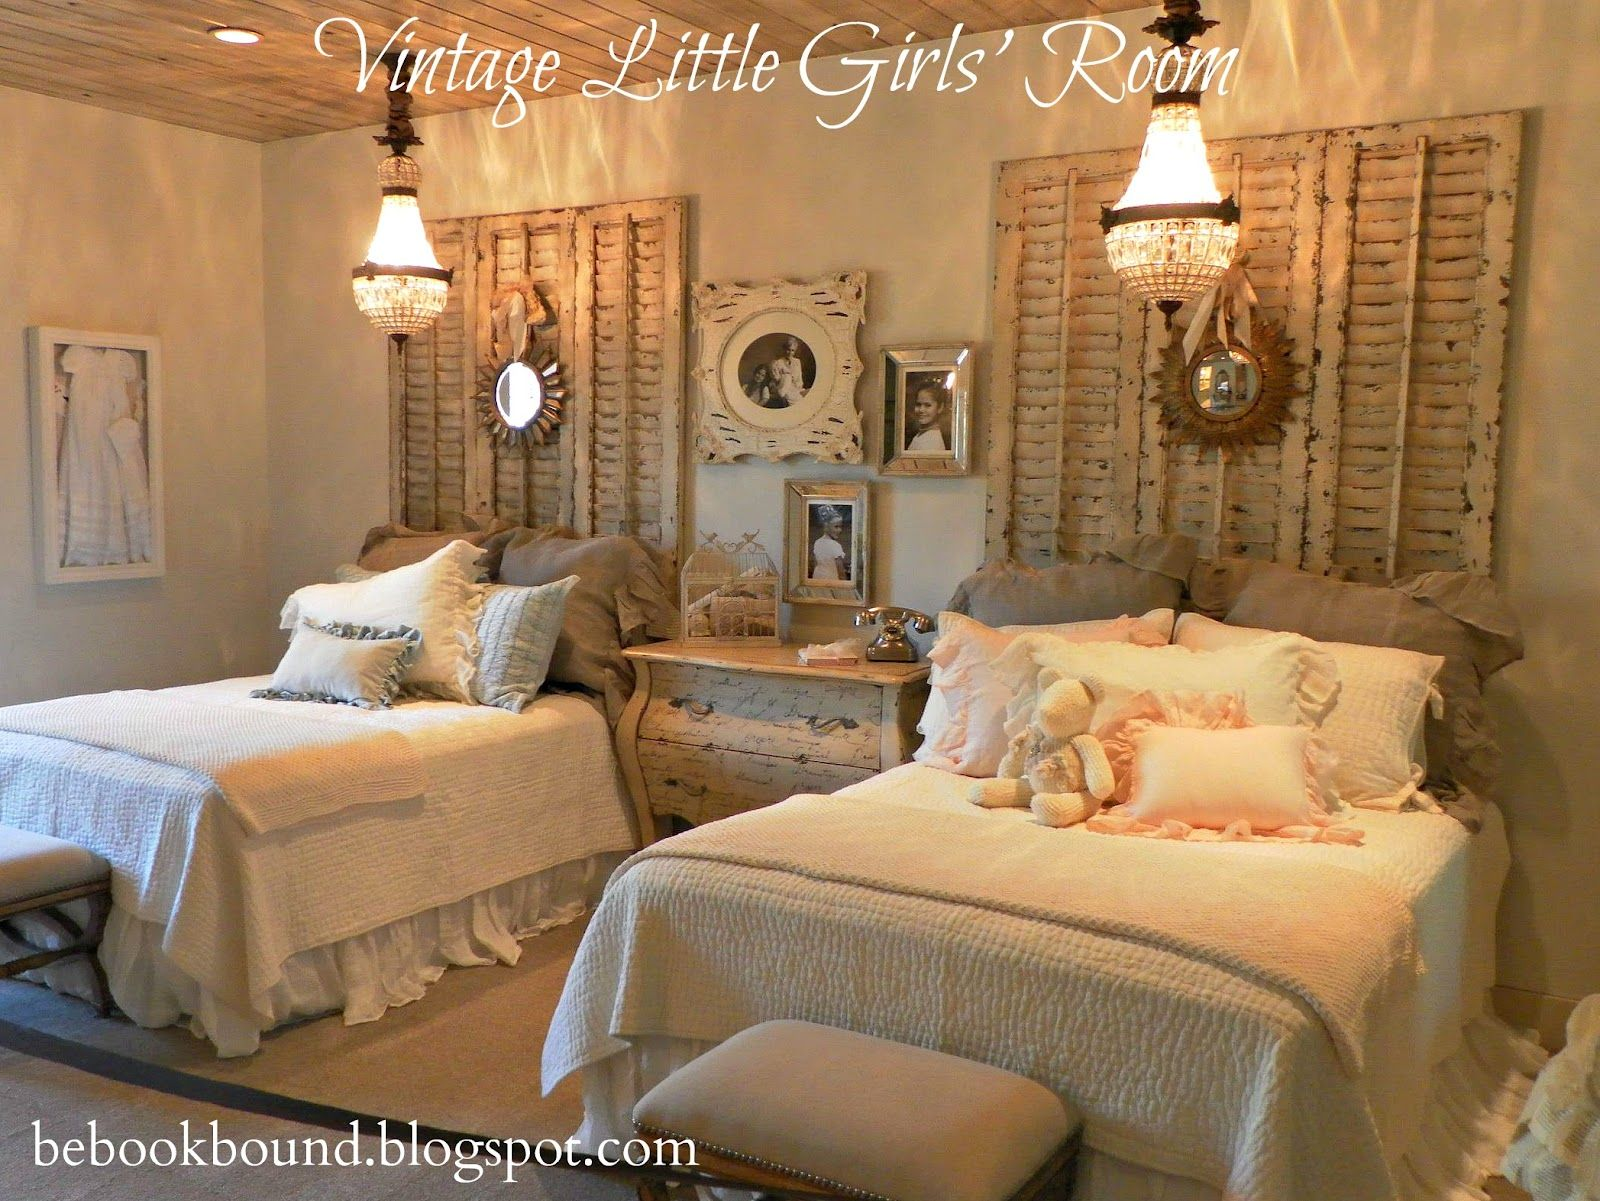 Living Room Vintage Room Decorating Ideas 1000 images about lets decorate a bedroom on pinterest farmhouse bedrooms cottage and headboards